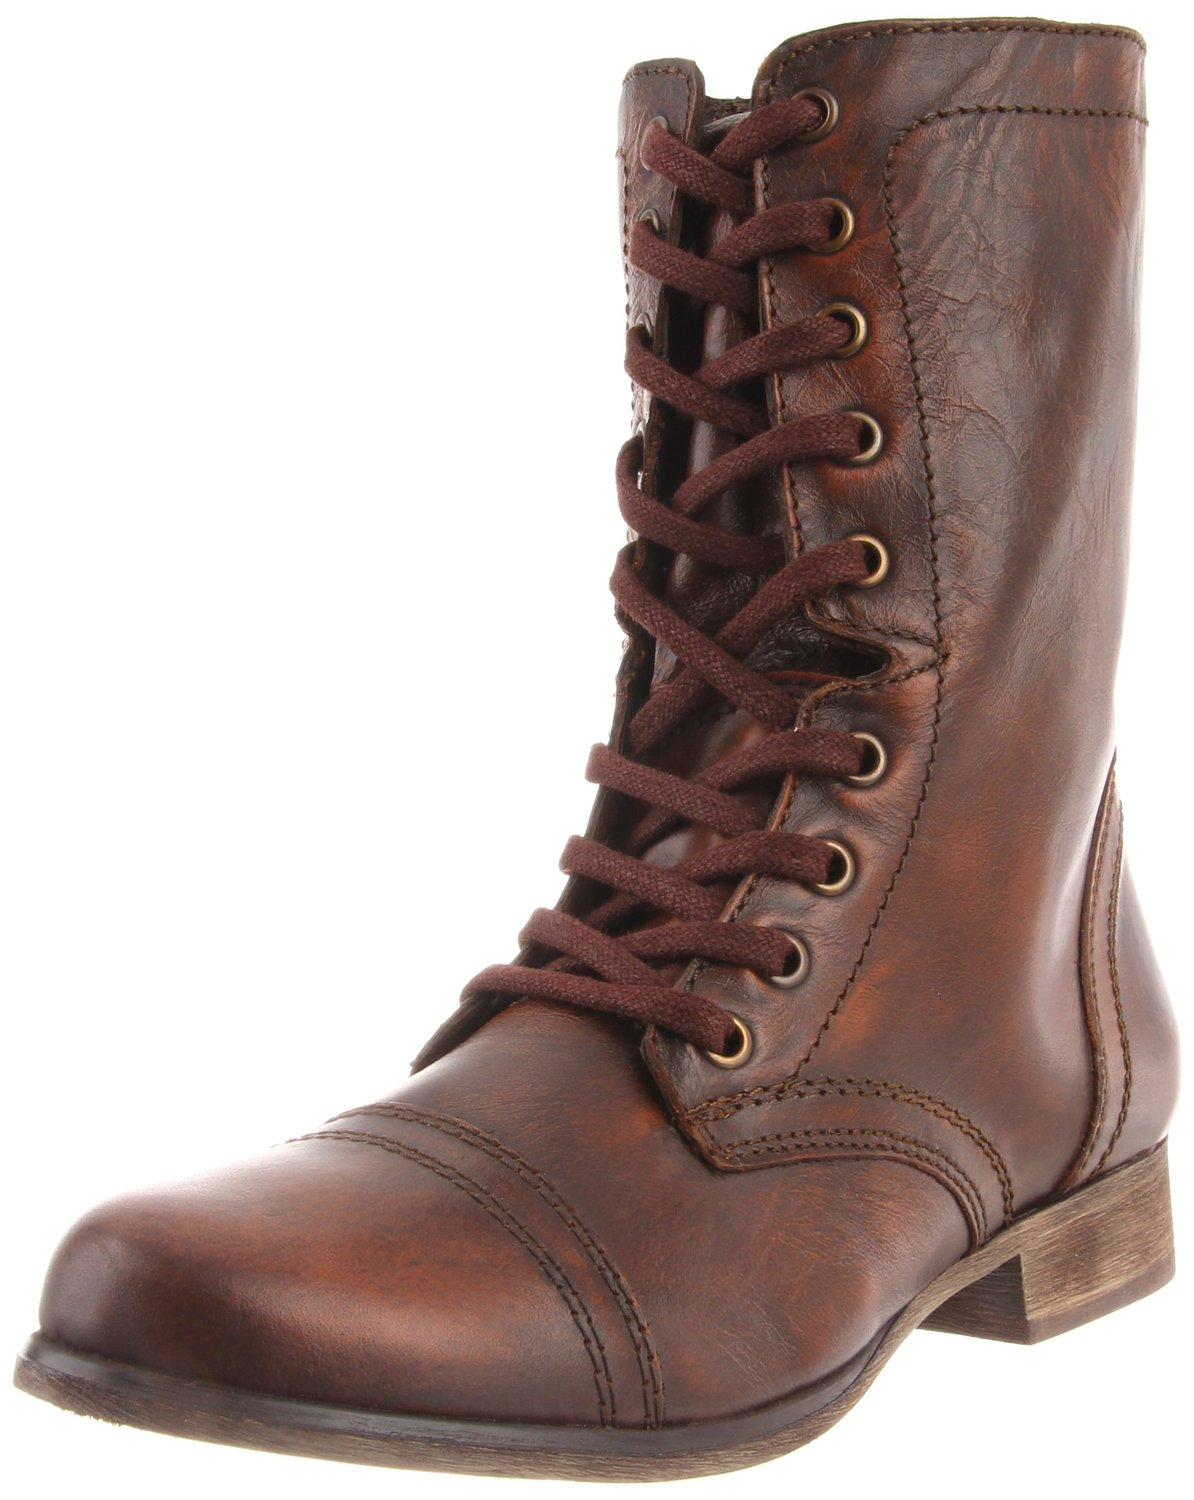 Perfect NEW LADIES WOMENS BROWN ARMY COMBAT MILITARY BOOTS HIGH ANKLE SHOES SZ 3-8 | EBay